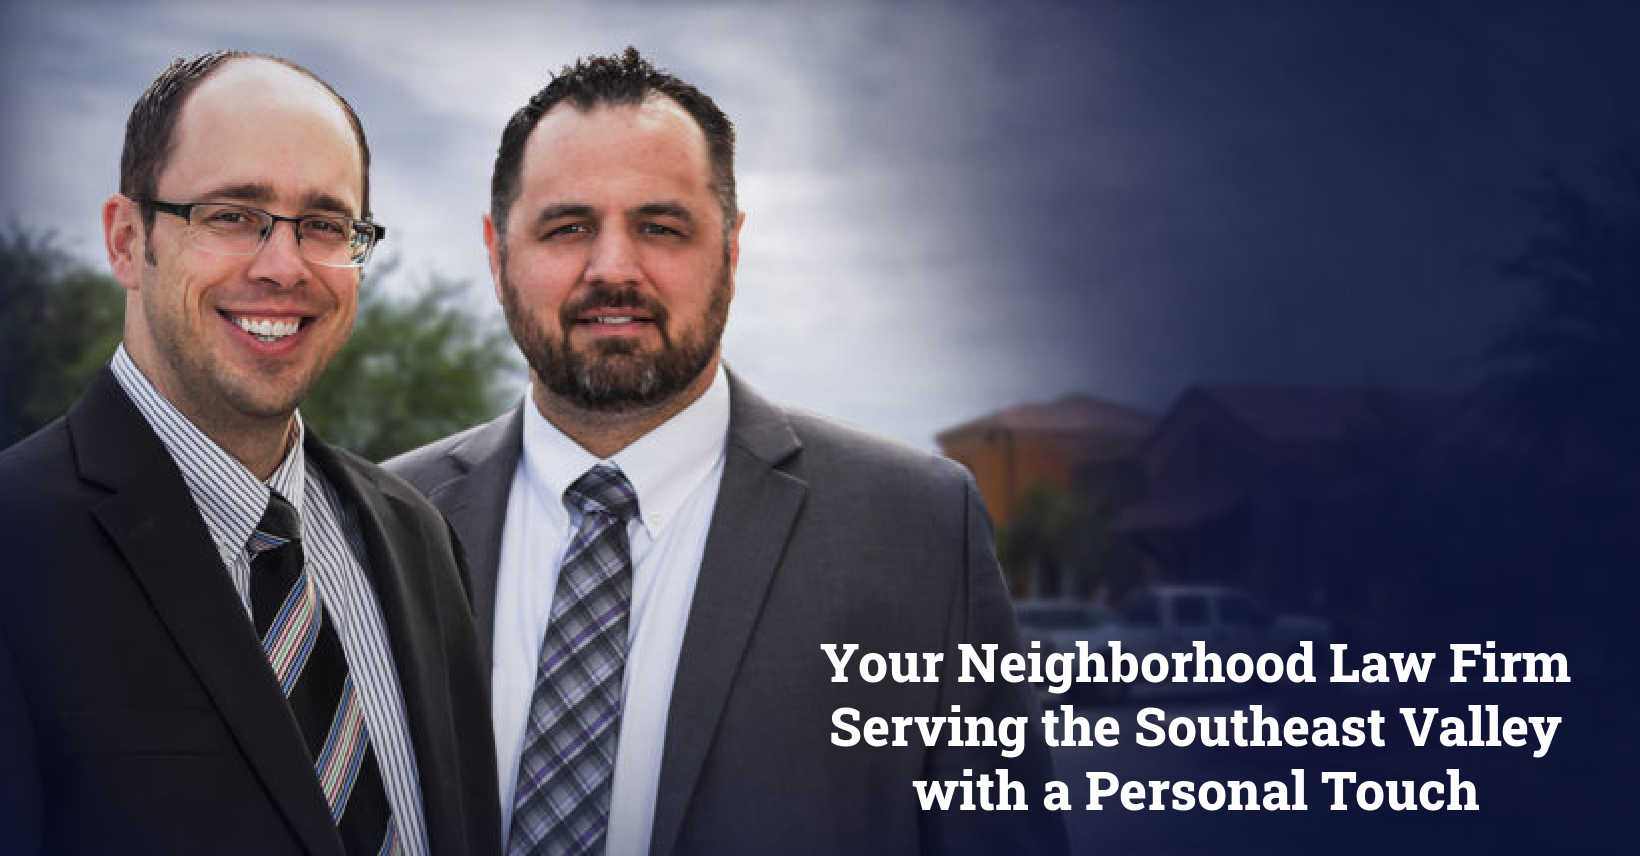 Neighborhood Law Firm Serving the Southeast Valley with a Personal Touch